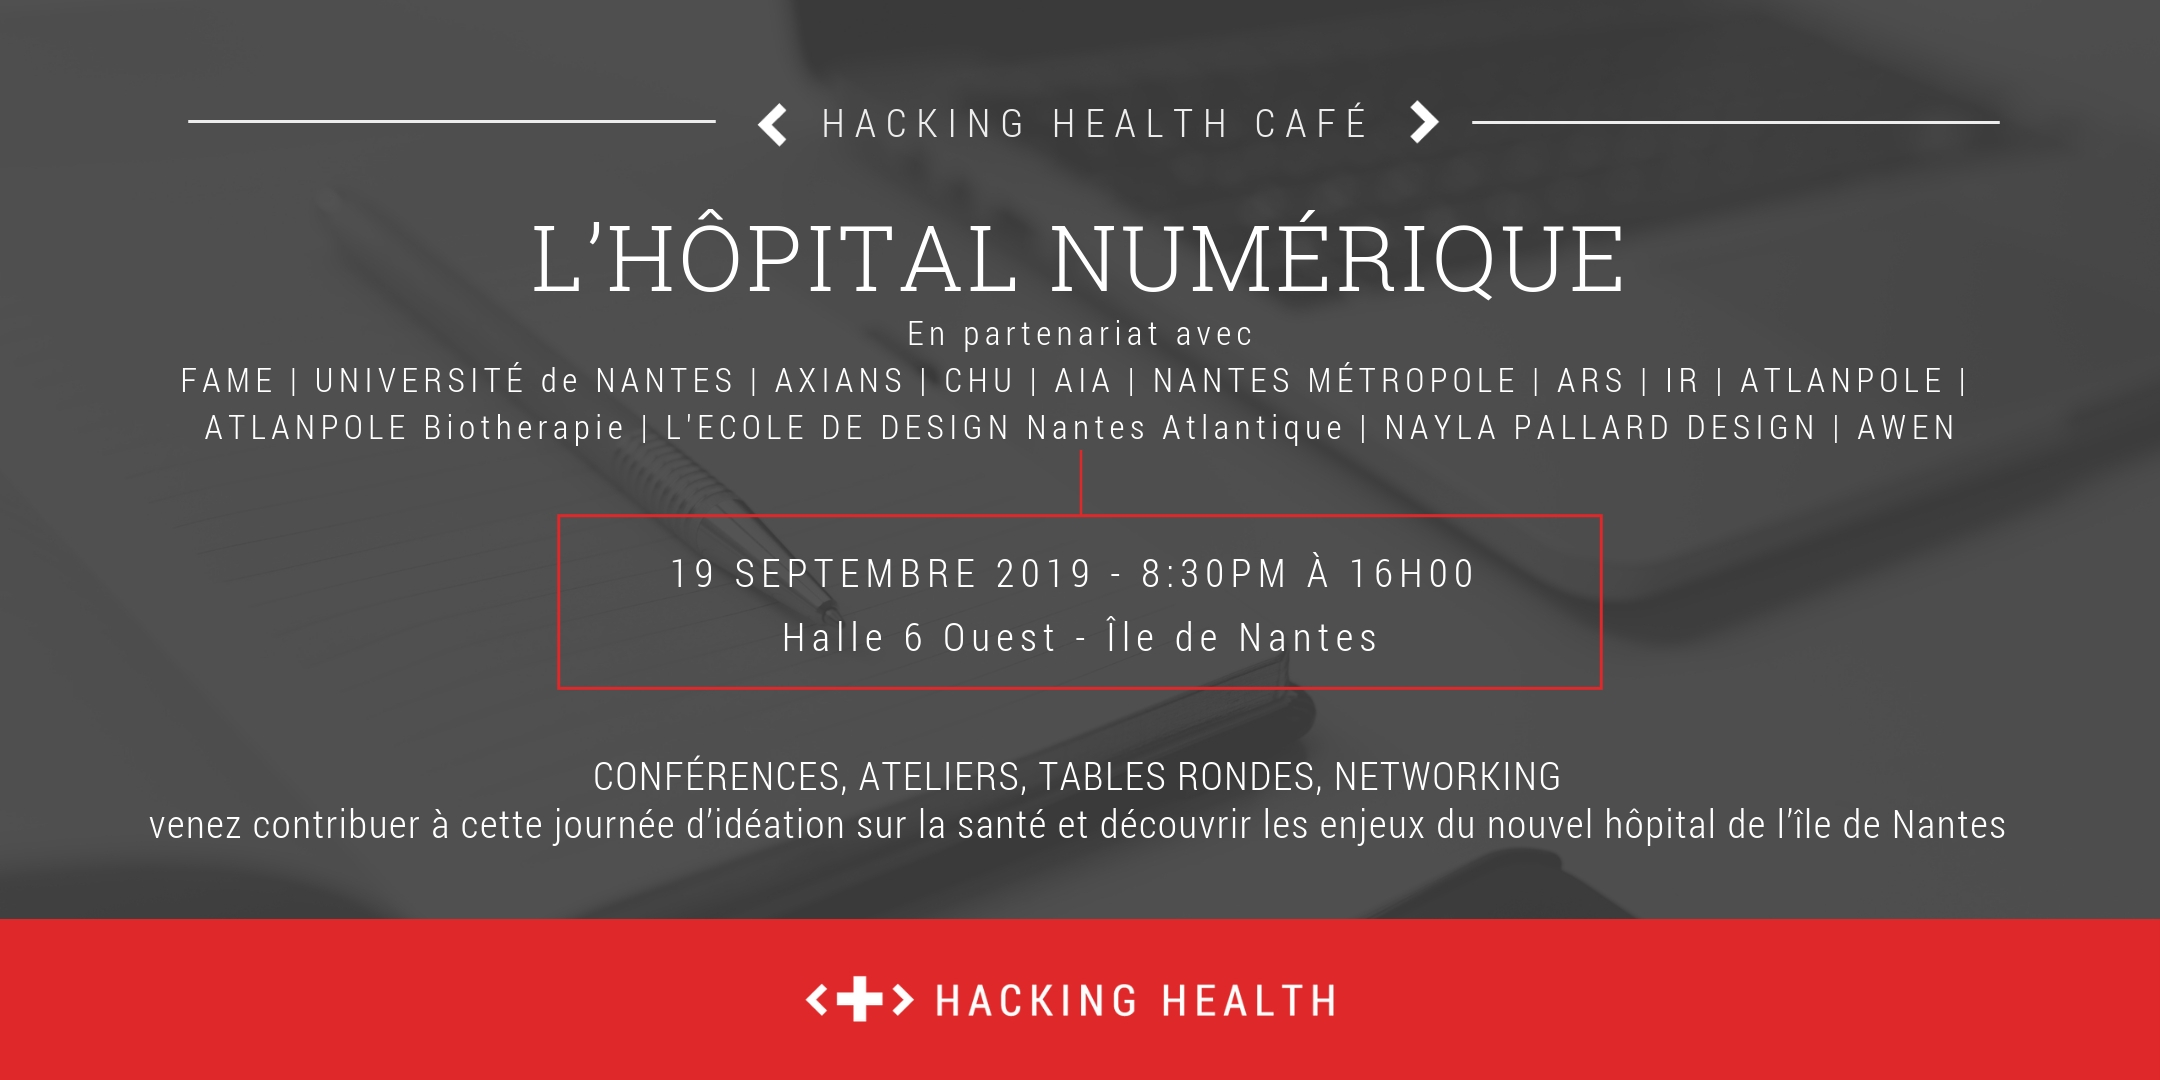 hopital numerique digital week 2019 Hacking Health Nantes